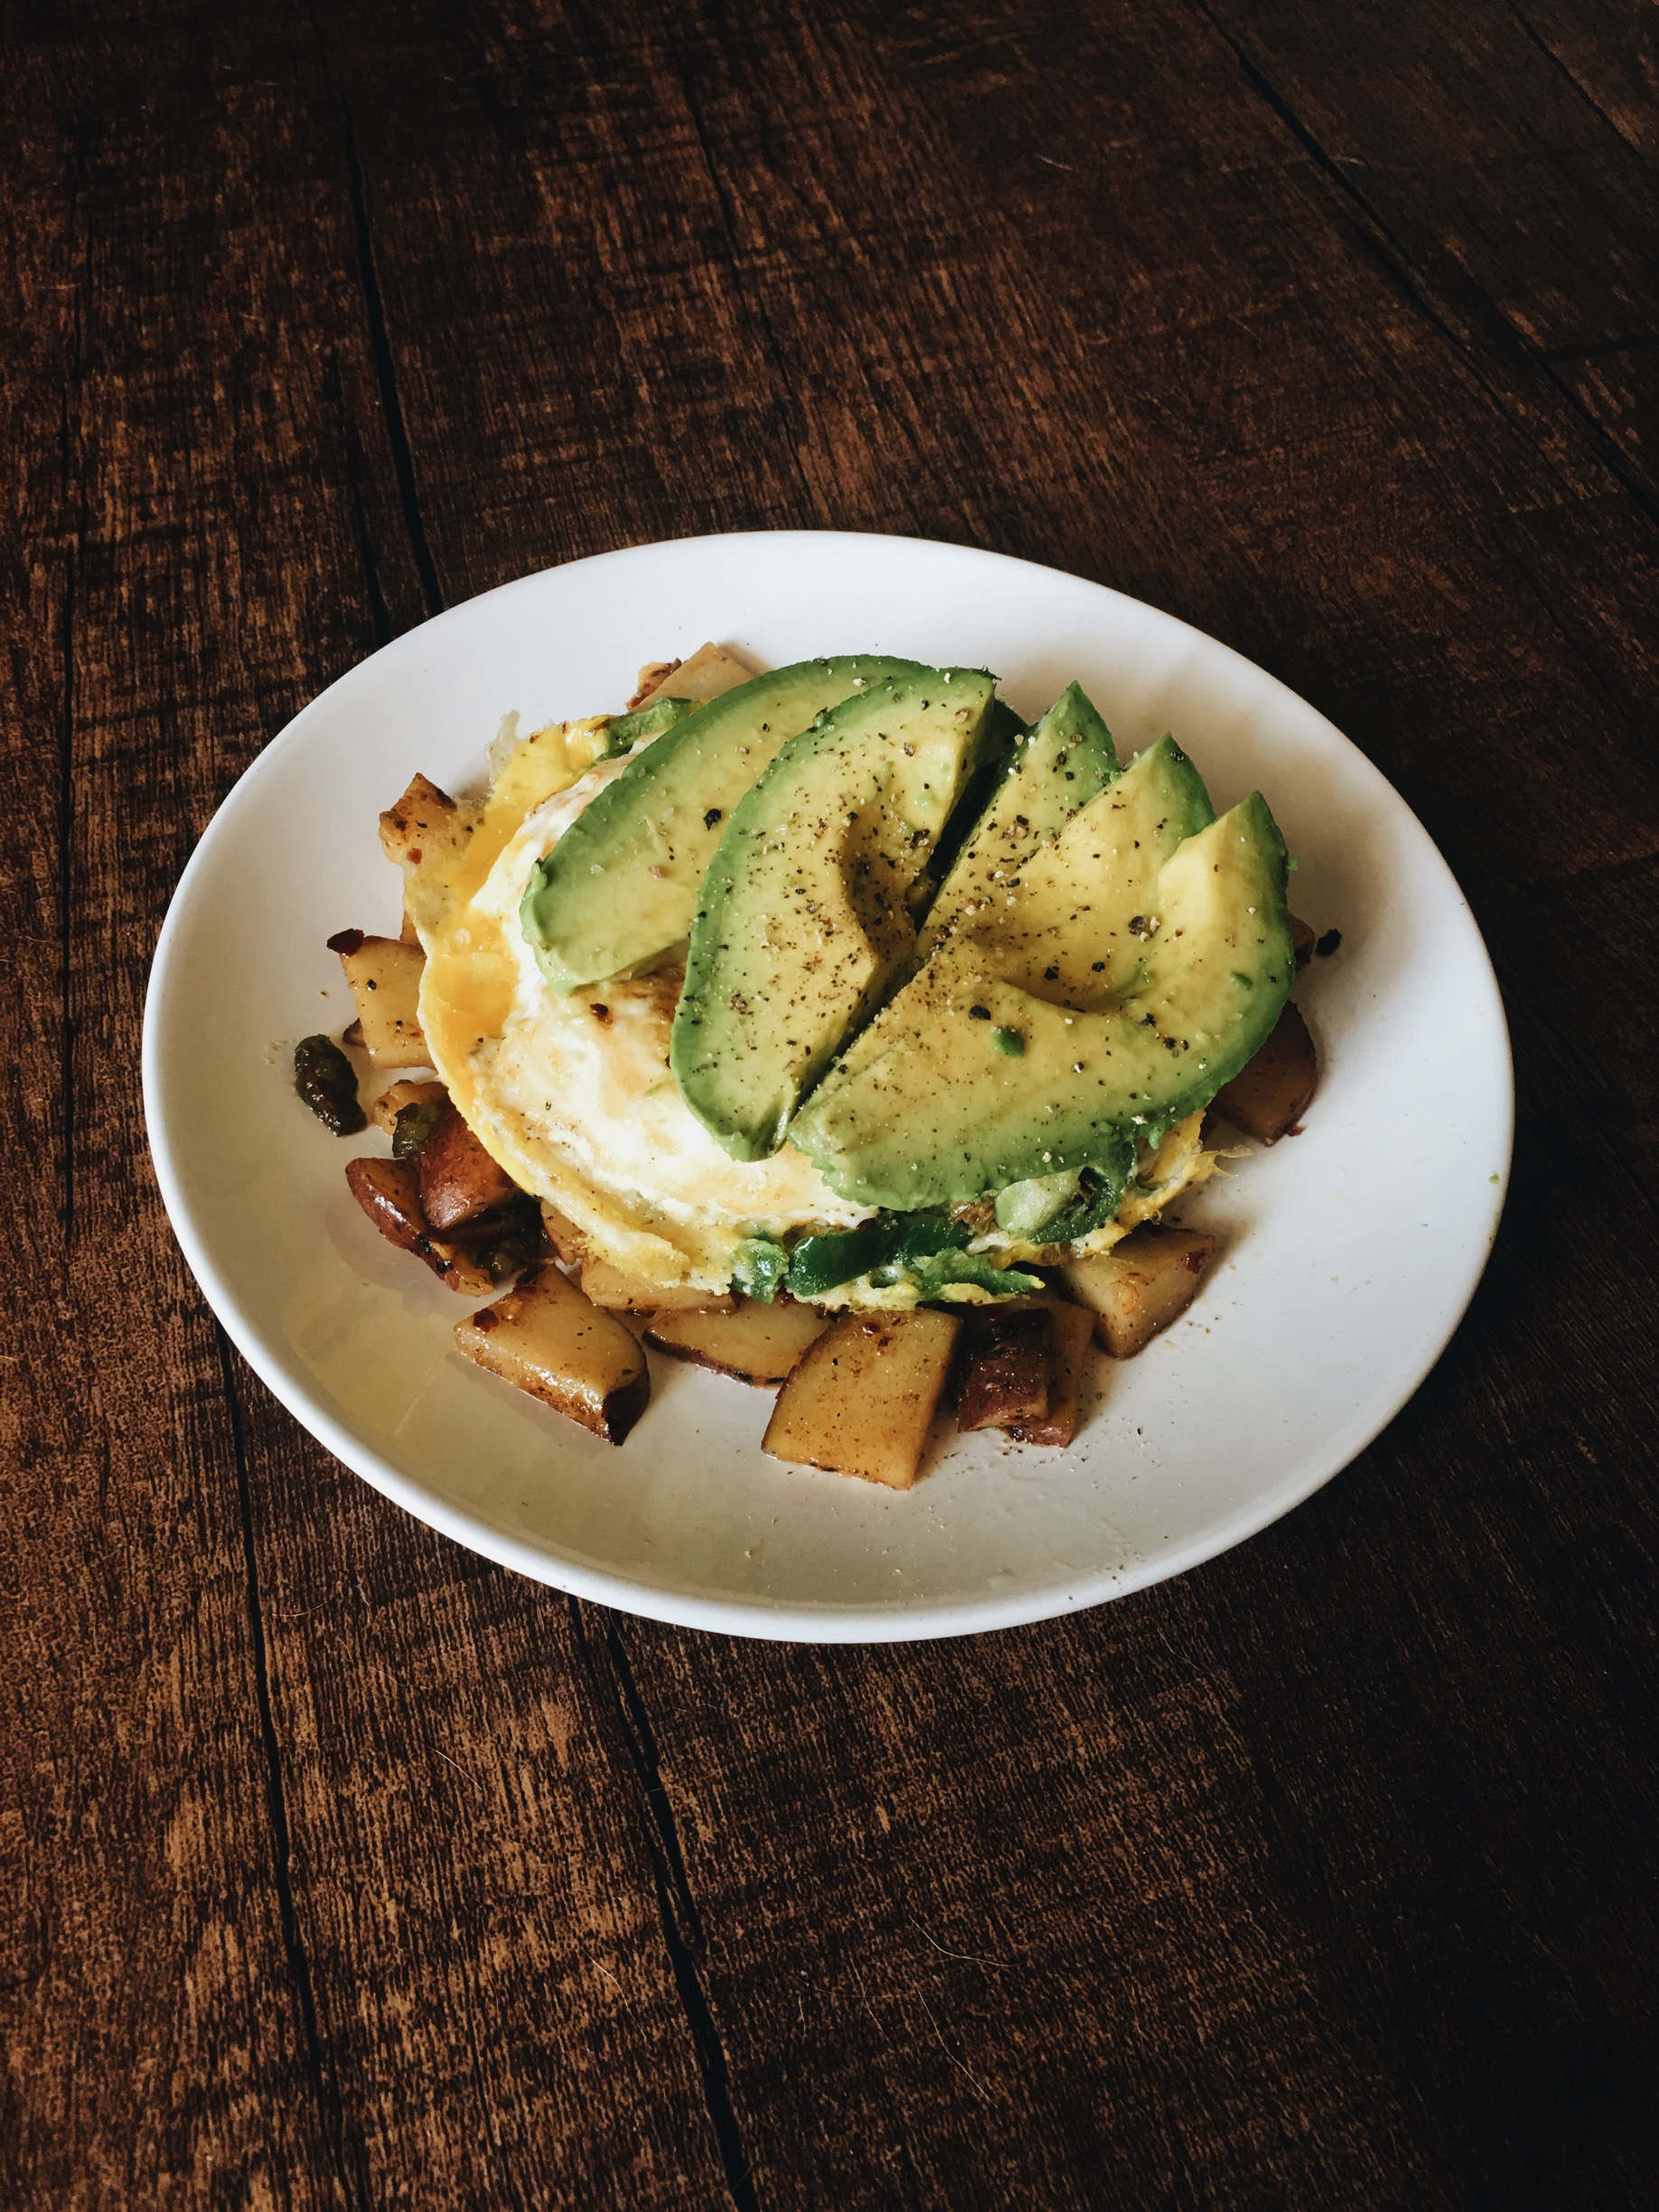 Potato, onion, fried egg, jalepenos, avacado, s&p